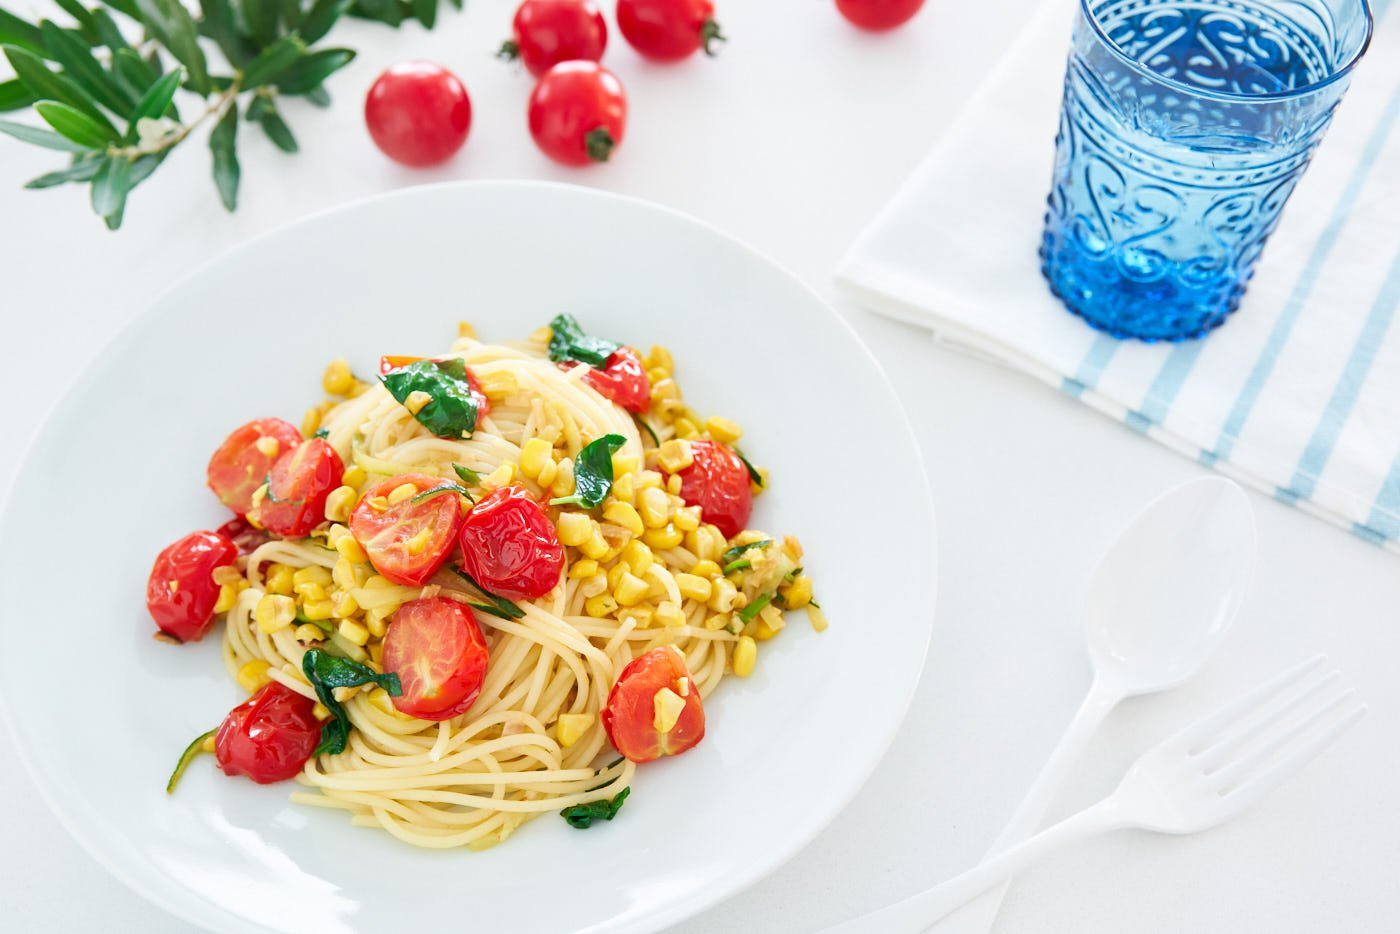 Pasta Estate (literally Summer Pasta) is an easy yet ultra-flavorful plant-based pasta that captures the essense of summer with pan-roasted tomatoes, corn and zucchini.